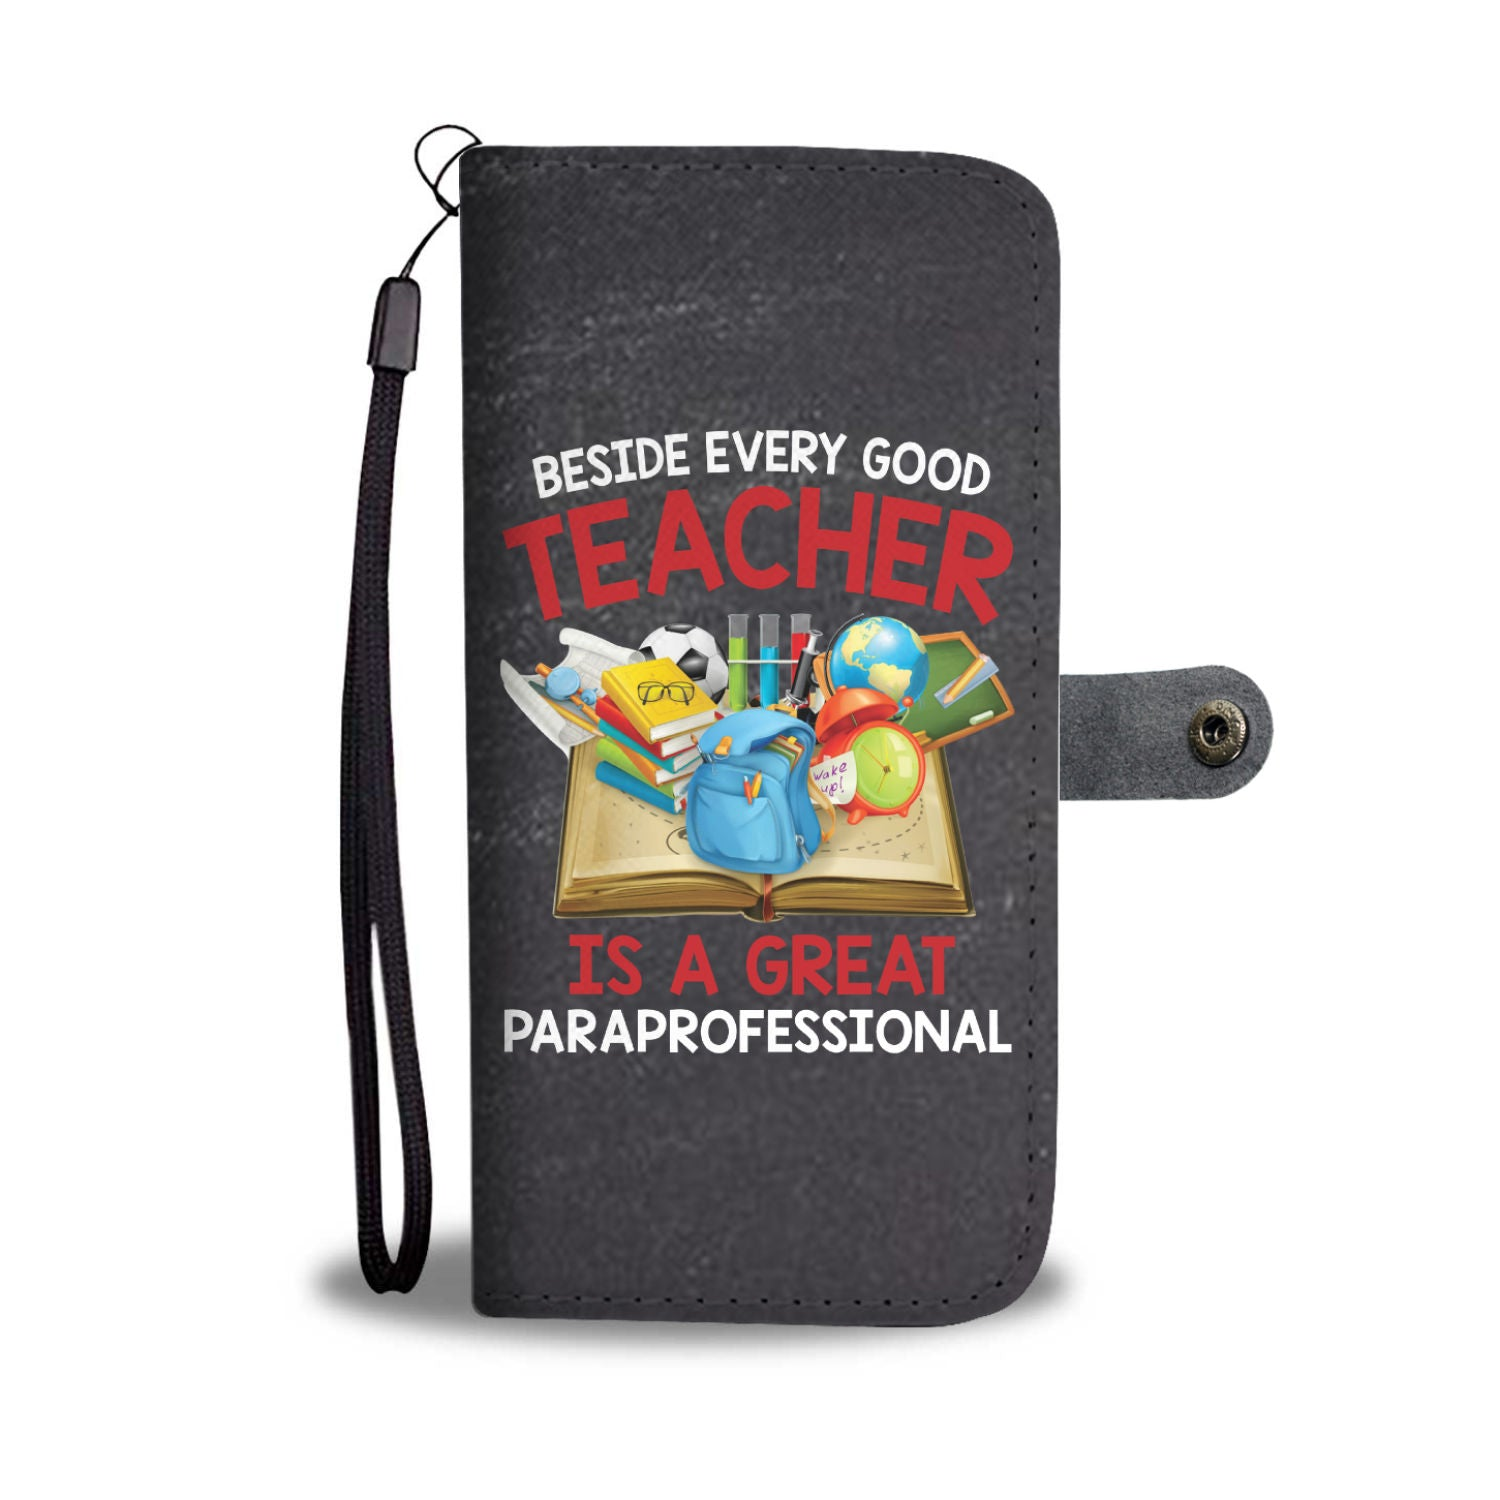 VIRA leather- like wallet case for awesome teachers & papaprofessionals